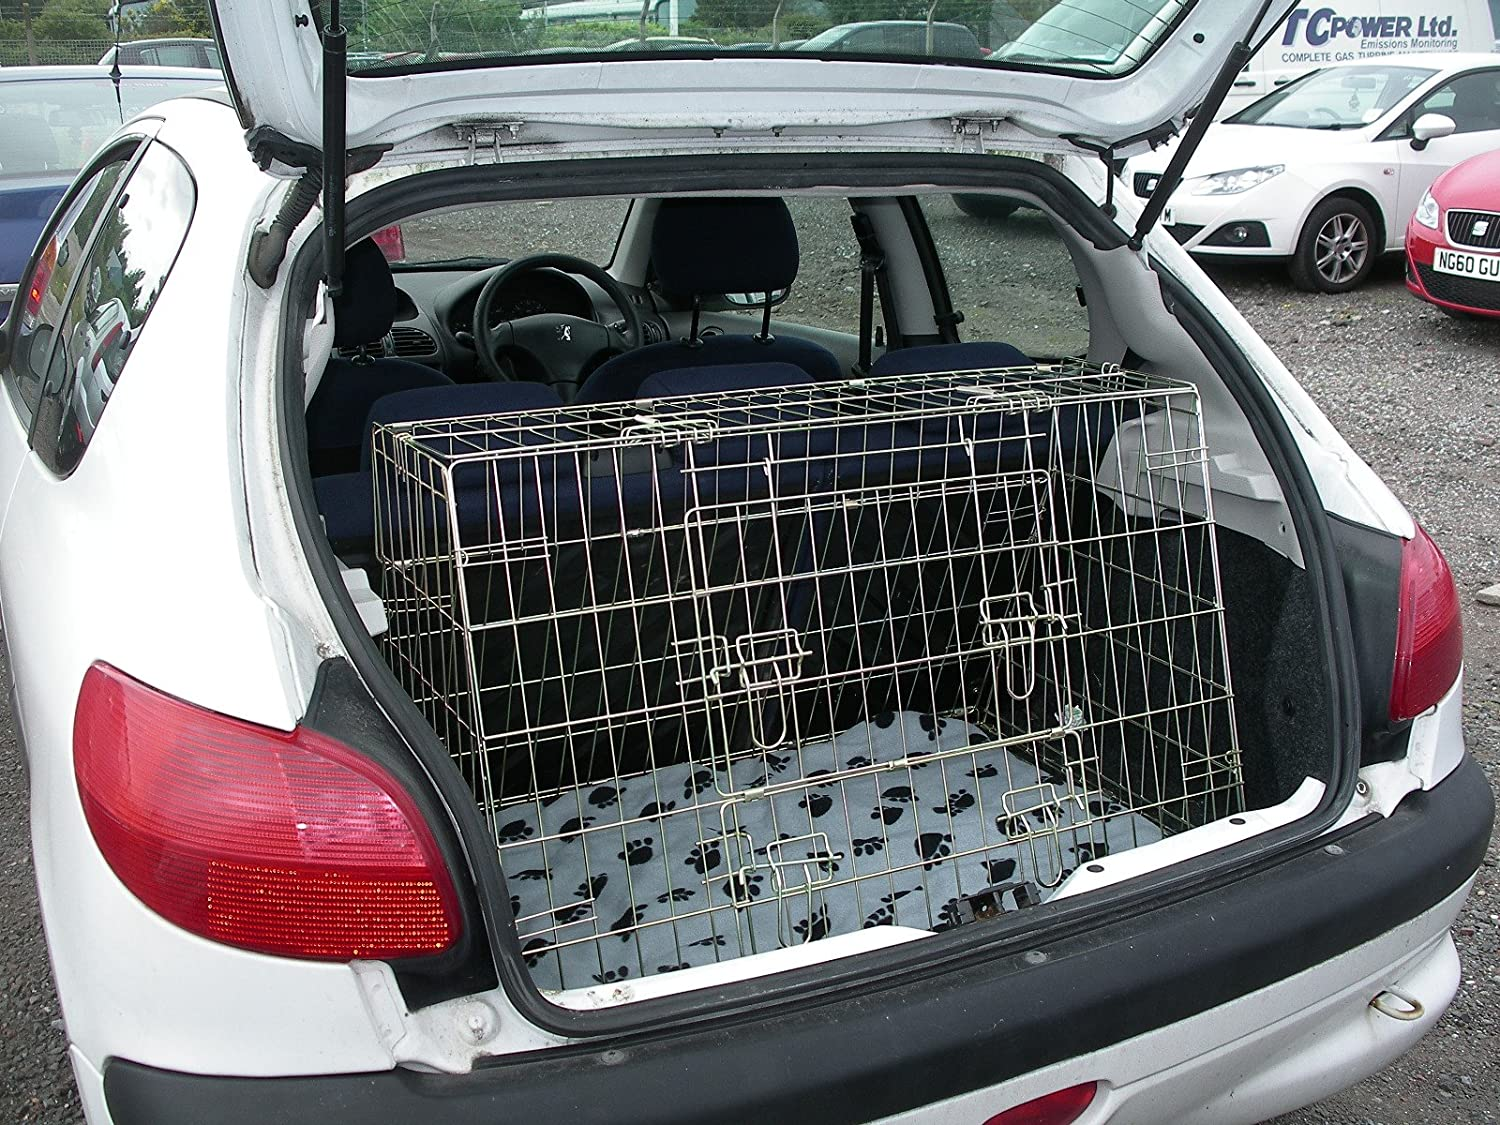 Arrow PEUGEOT 206 02-06 SLOPING CAR DOG CAGE BOOT TRAVEL CRATE PUPPY GUARD Arrows